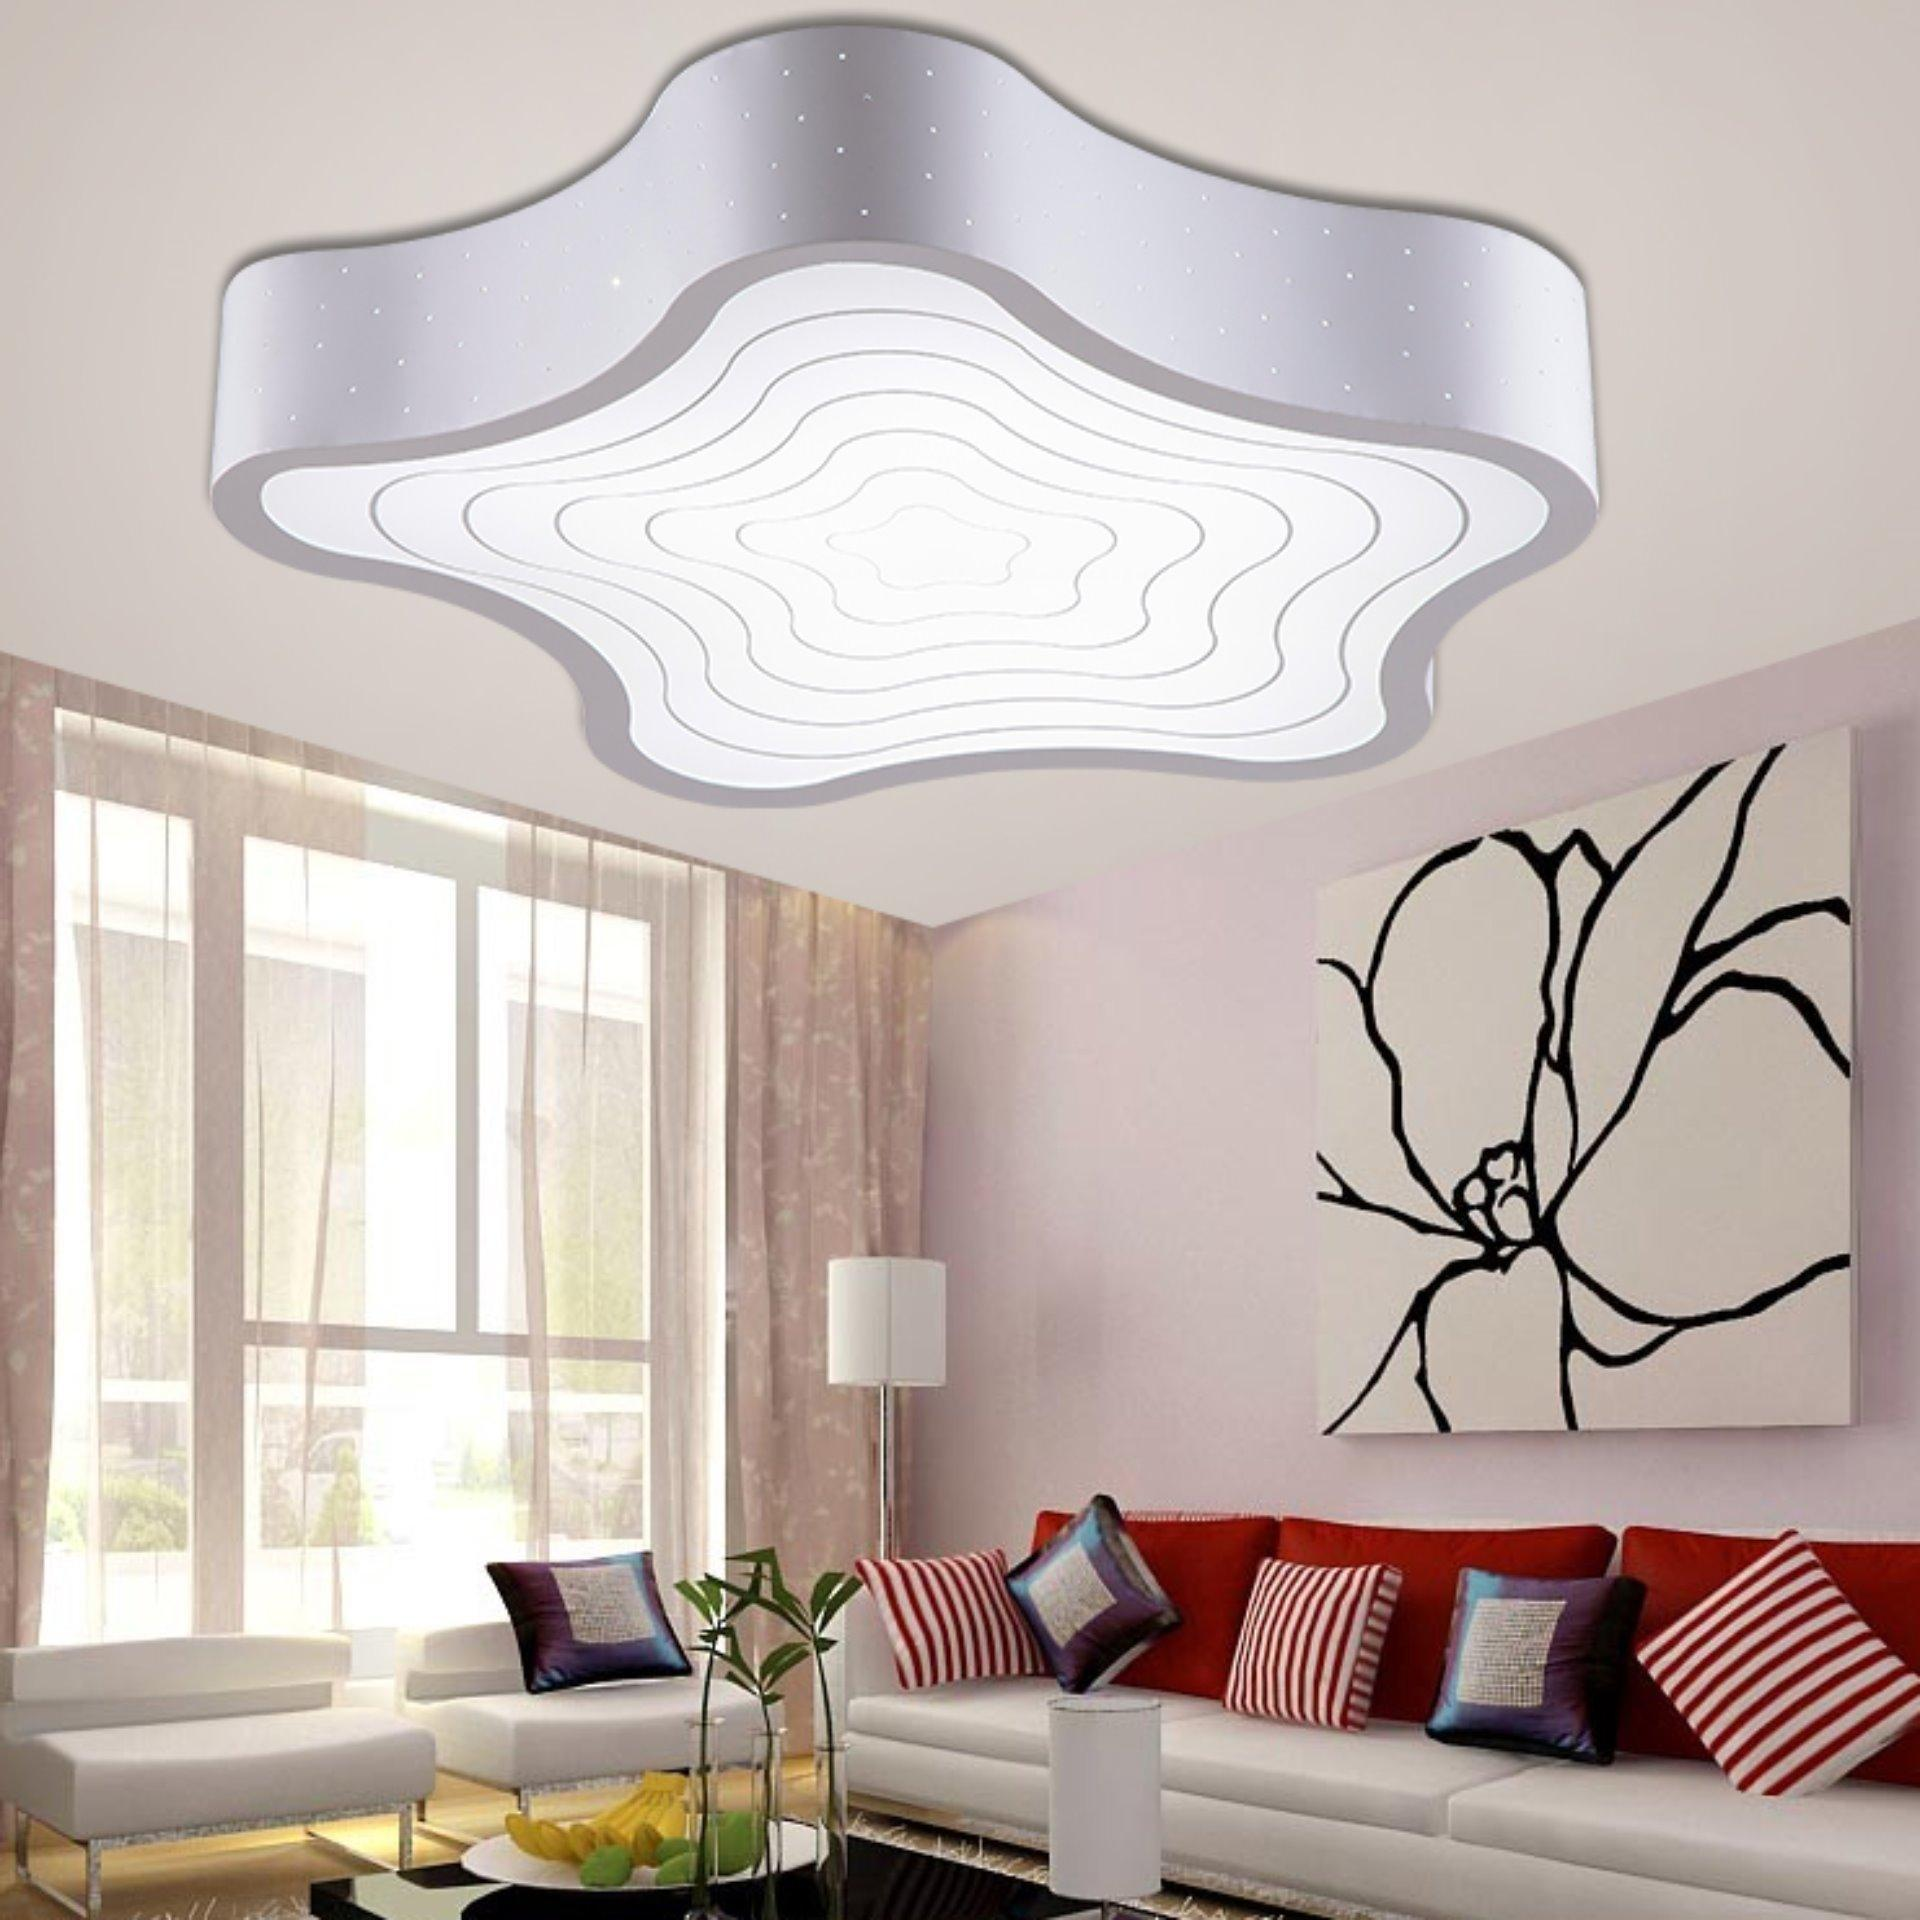 Light Colors For Bedroom Starfish Modern Classic Led Ceiling Light 24w Double Color For